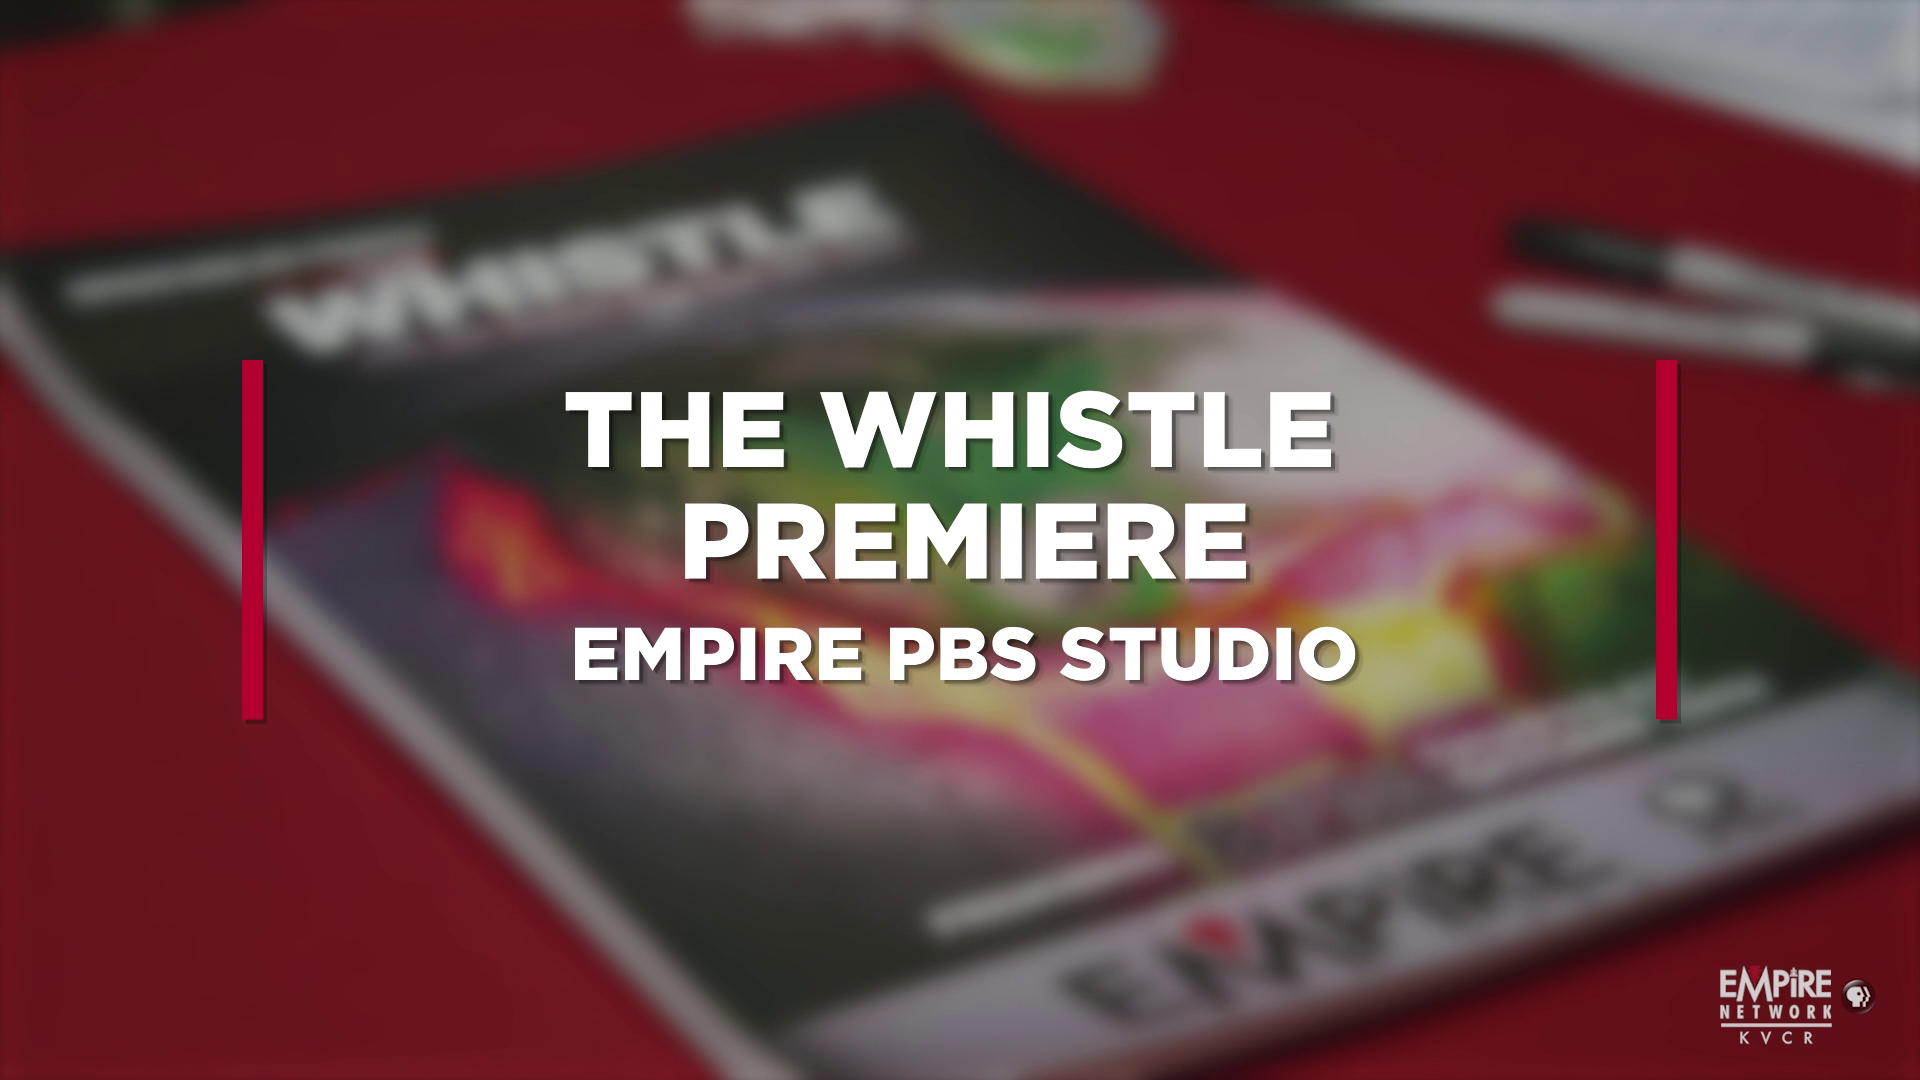 The Whistle Premiere